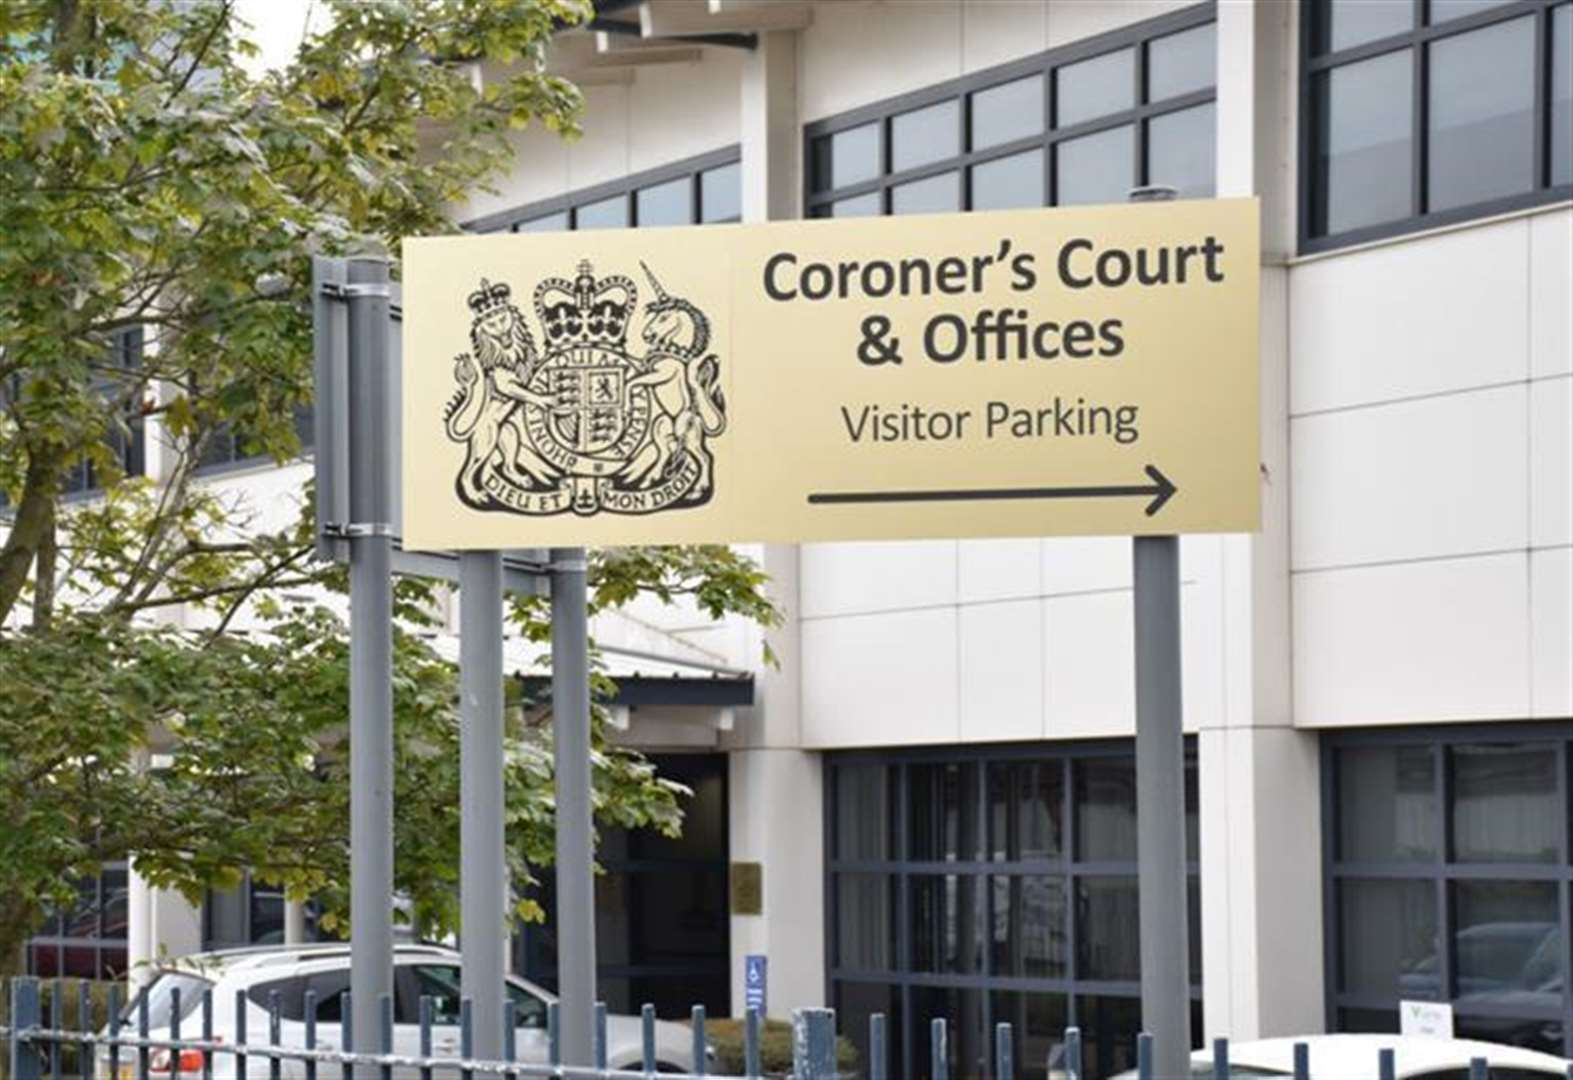 Retired engineer found collapsed in his home, inquest hears